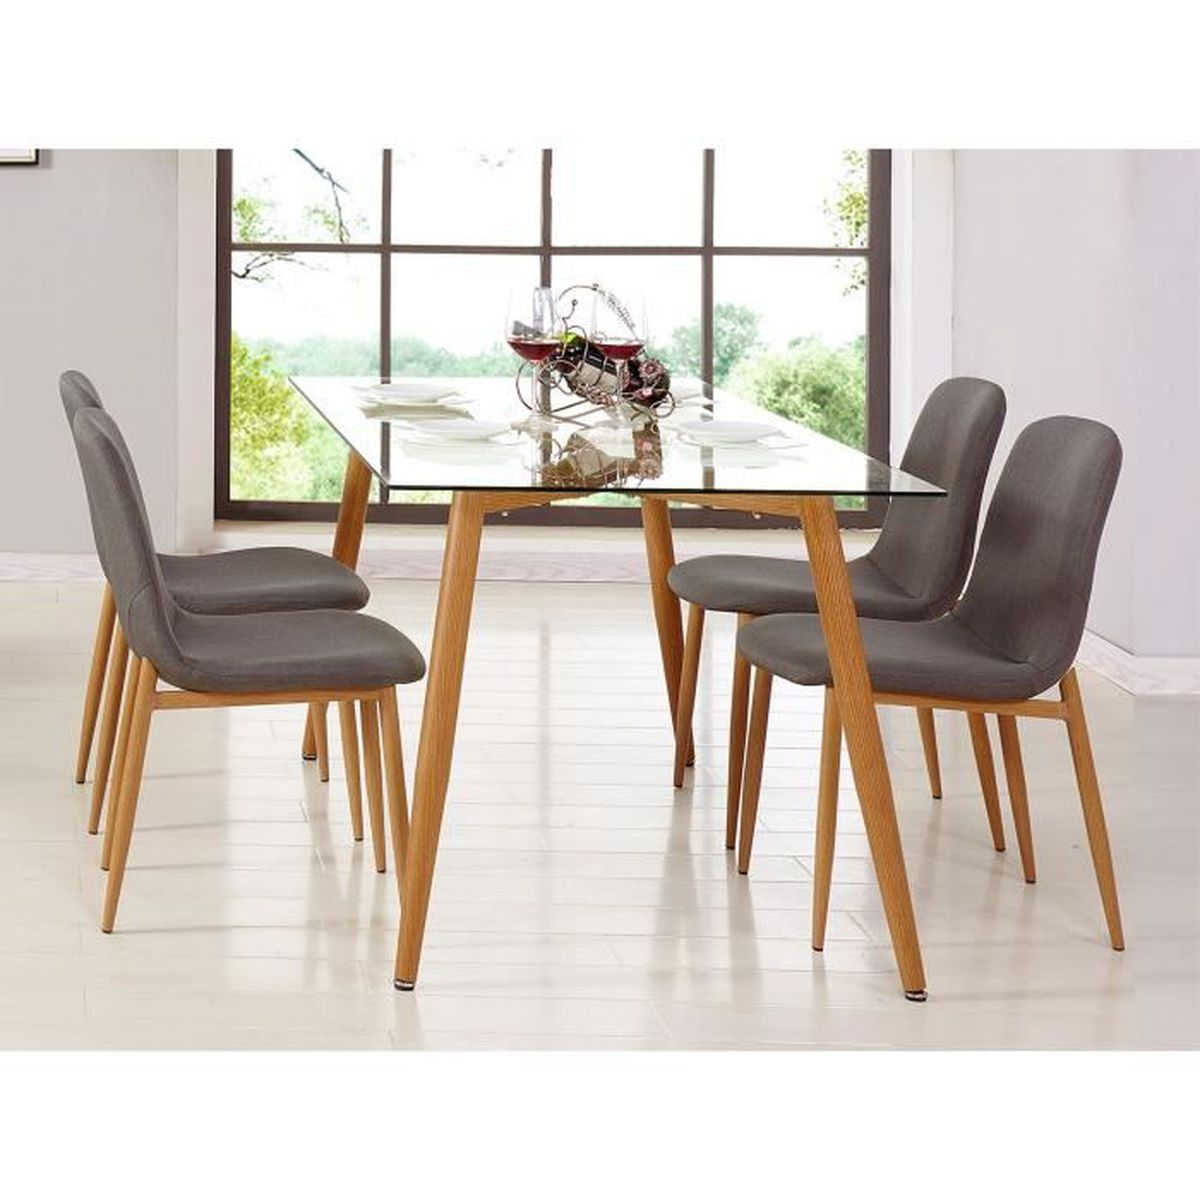 table en verre 4 chaises scandinave nordi